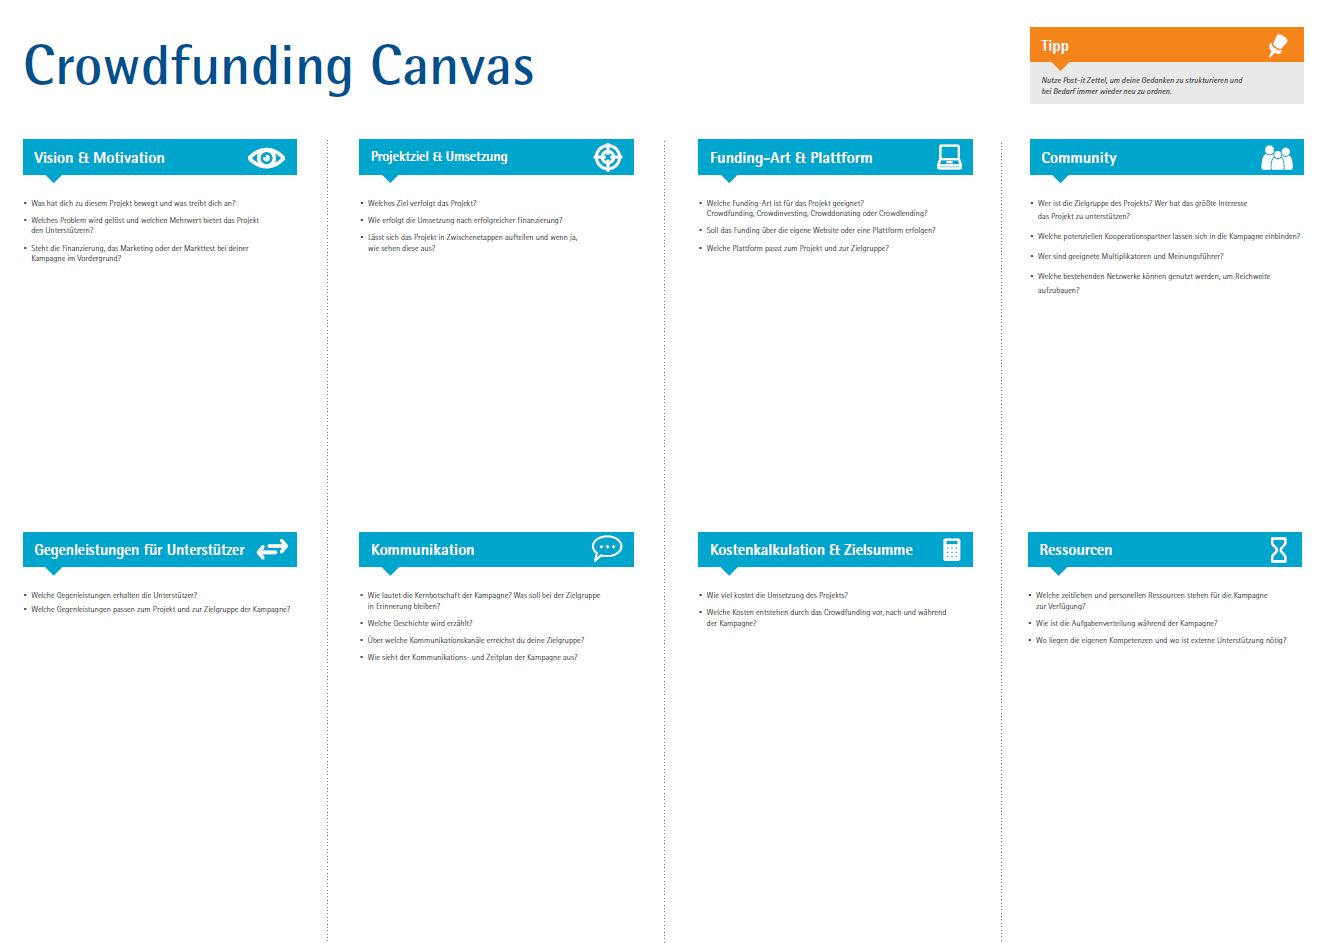 IHK Crowdfunding Canvas